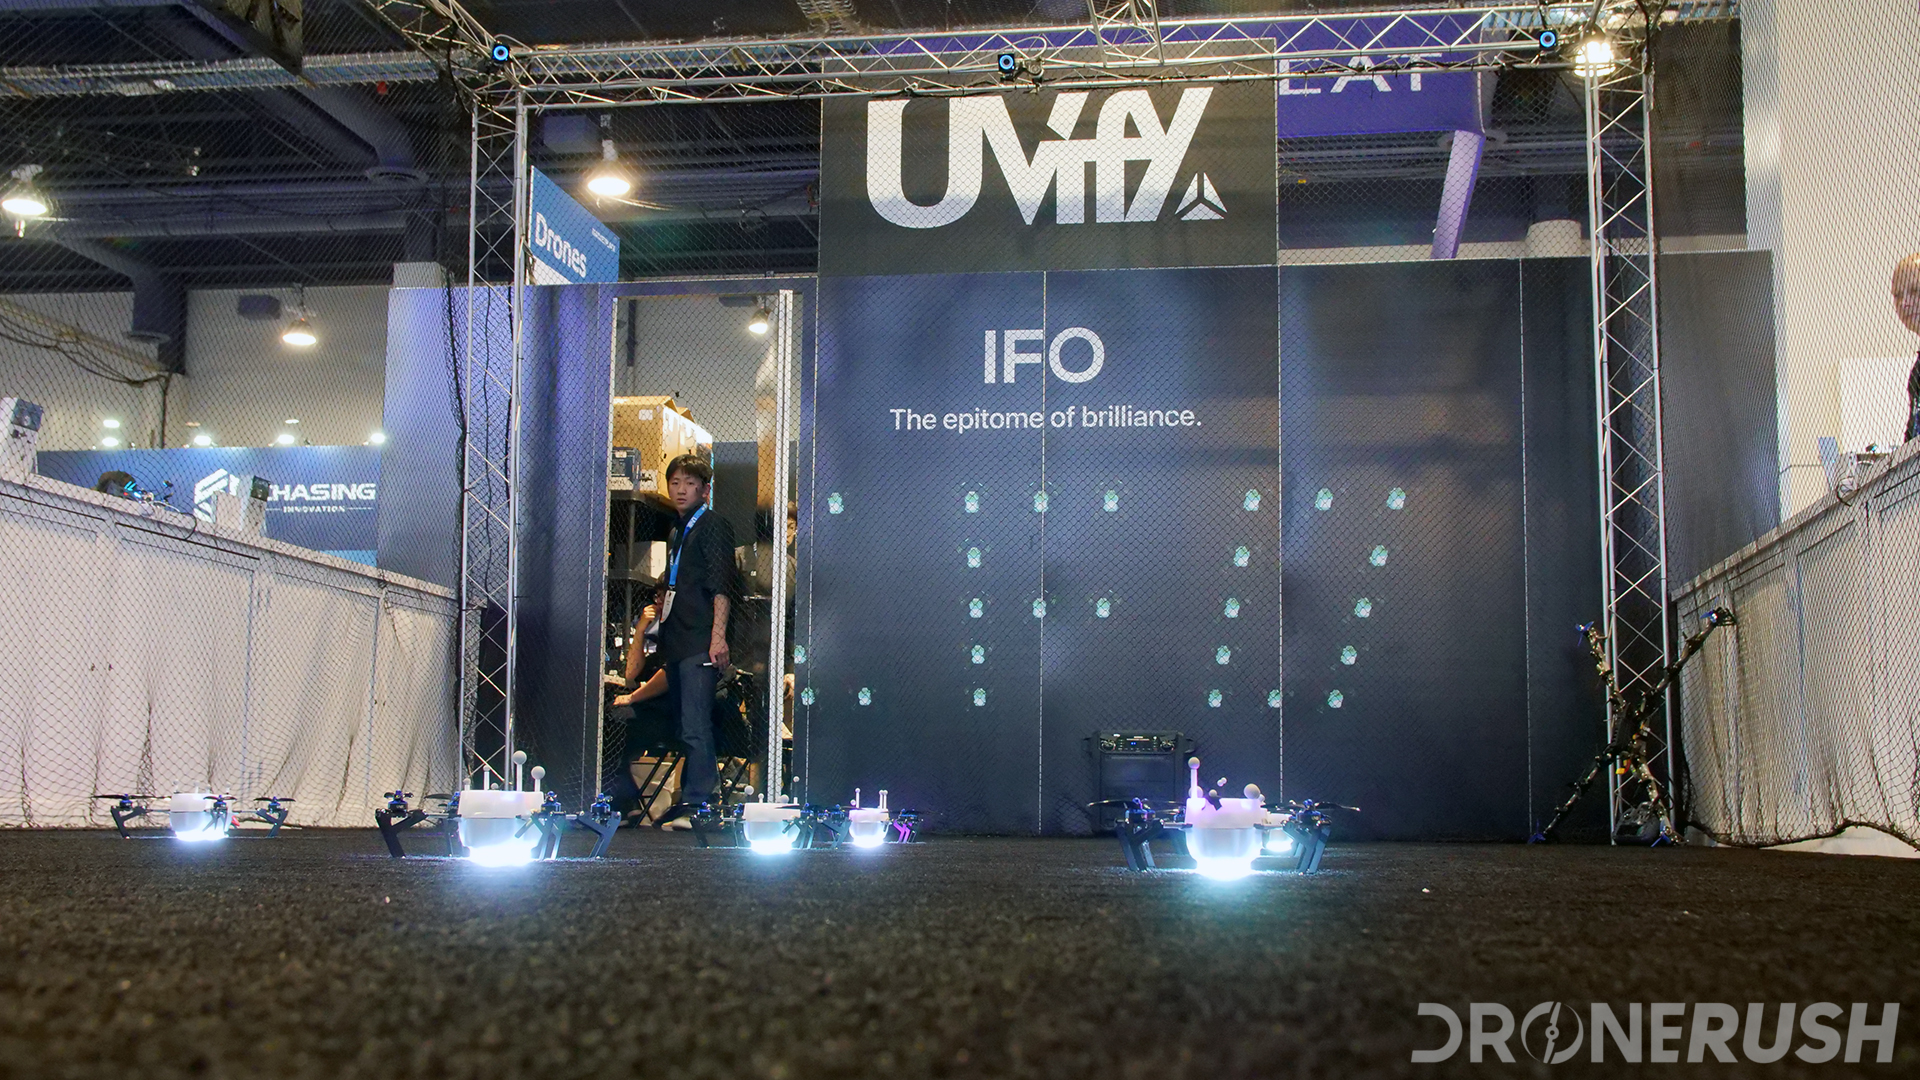 UViFY light light drones CES 2019